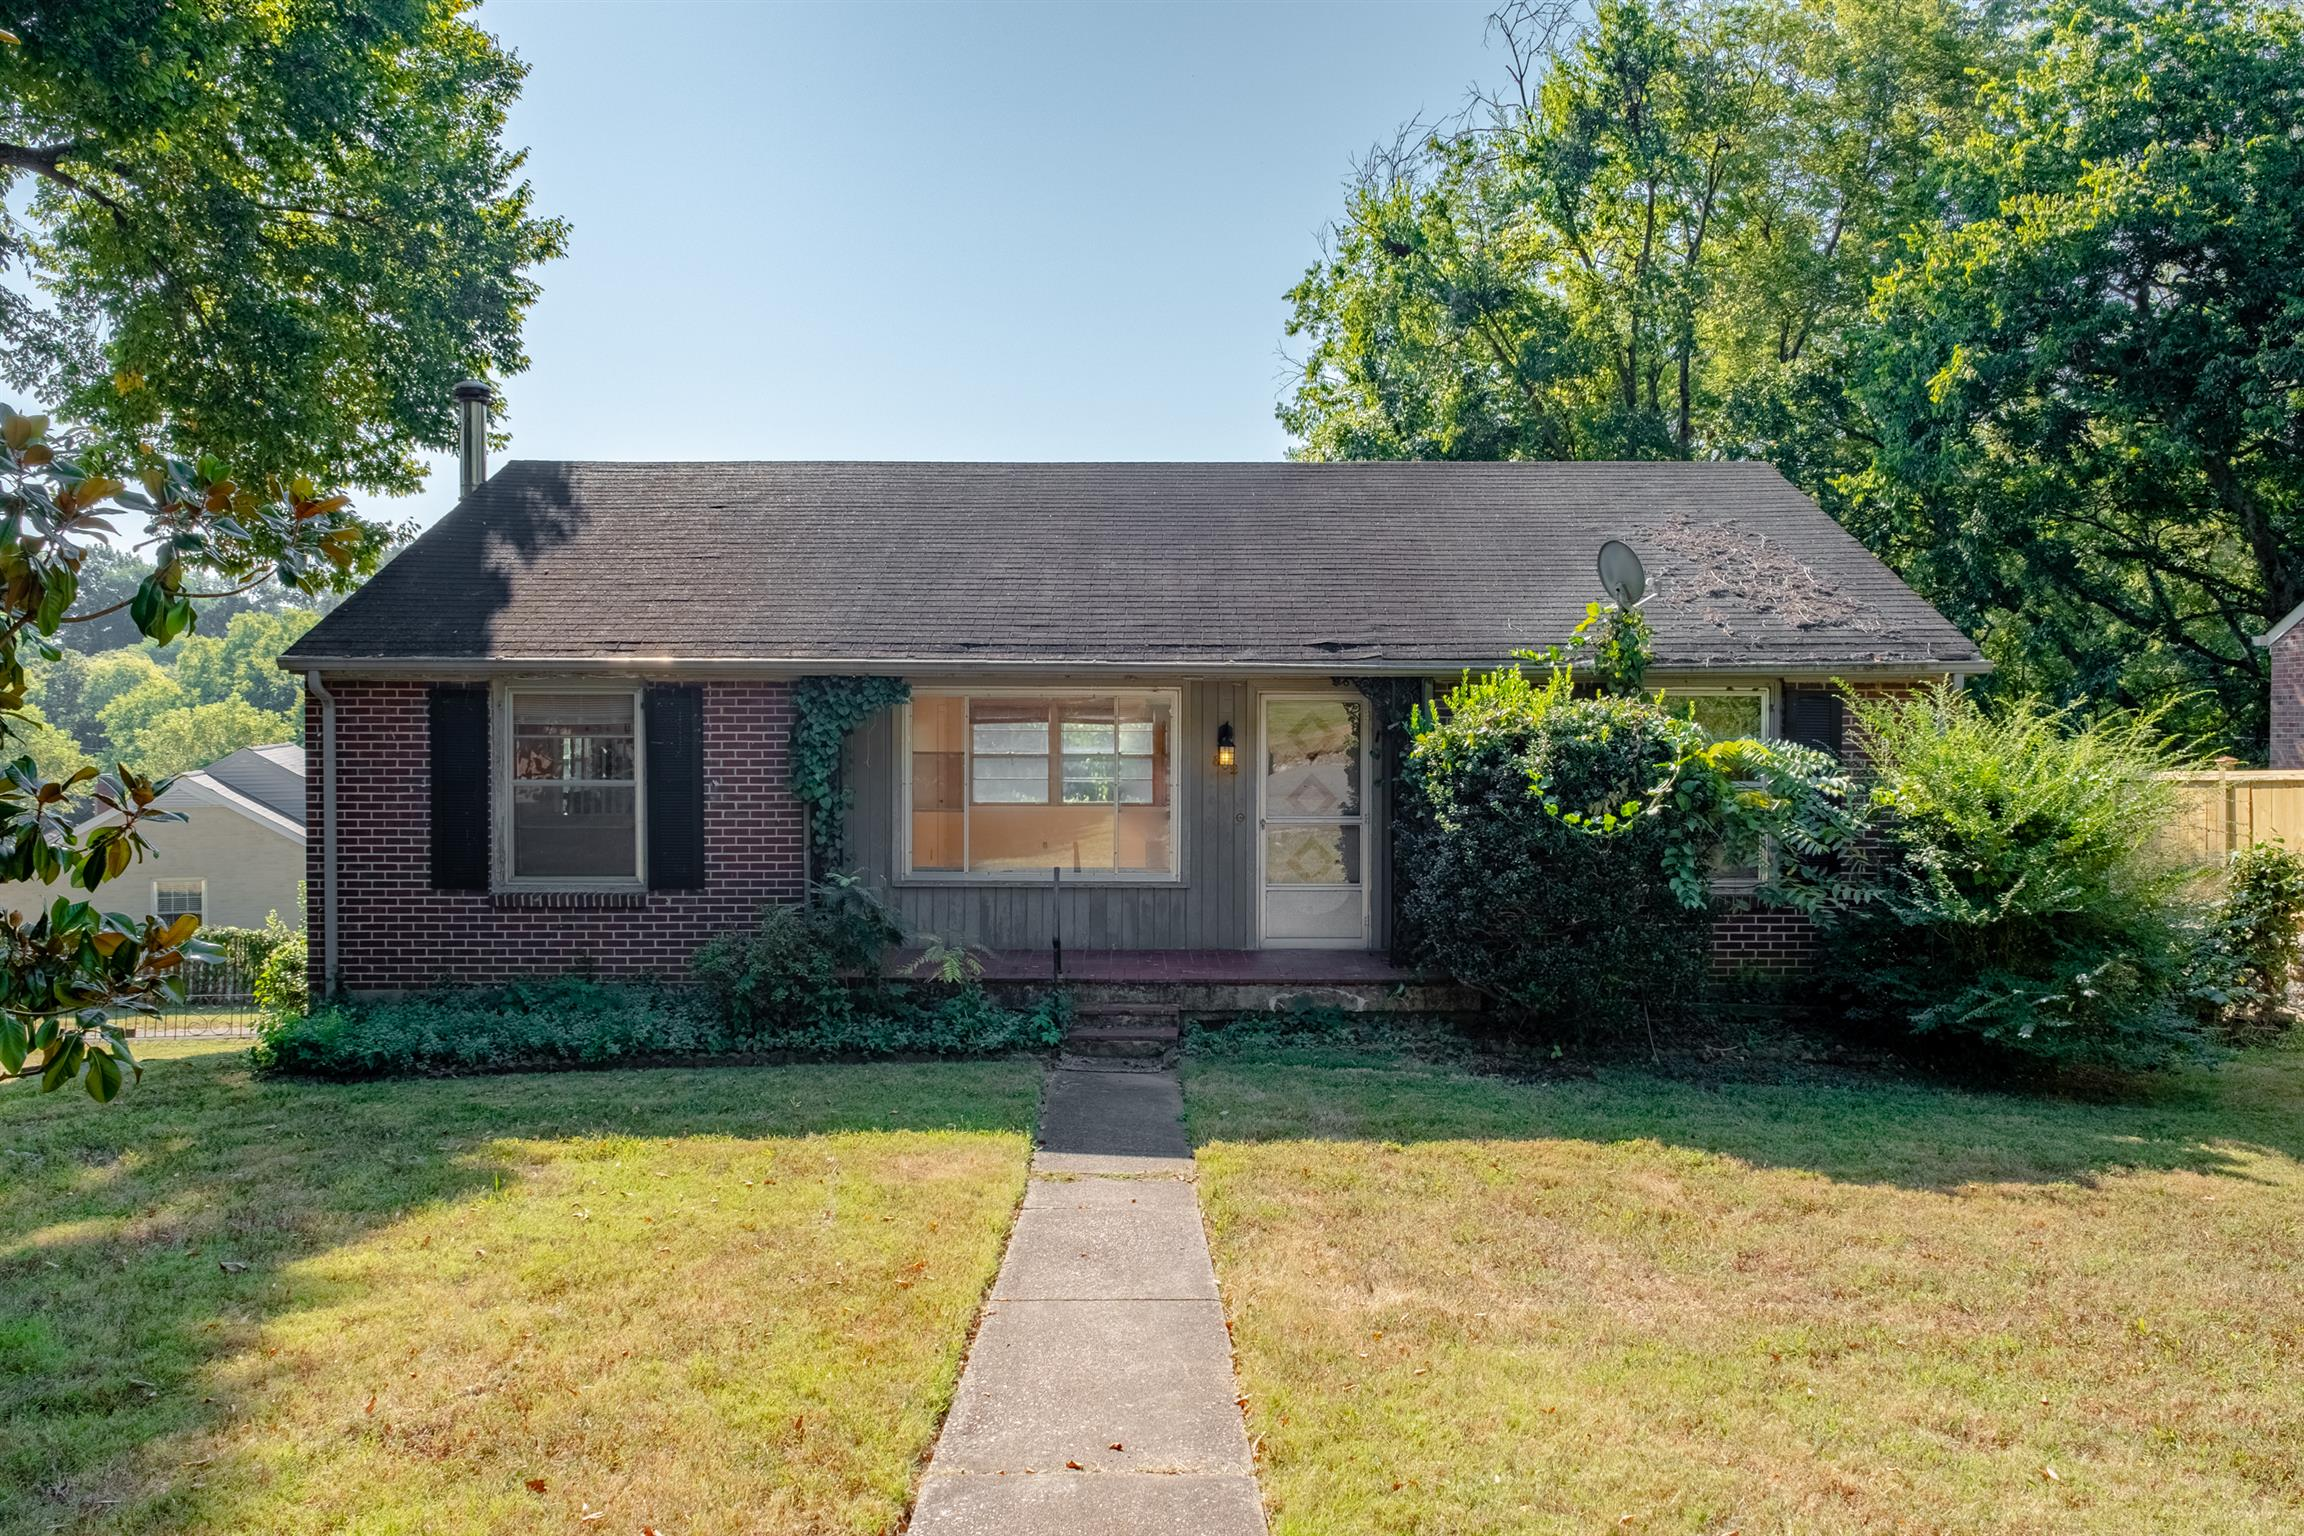 802 Kendall Dr, Nashville, TN 37209 - Nashville, TN real estate listing